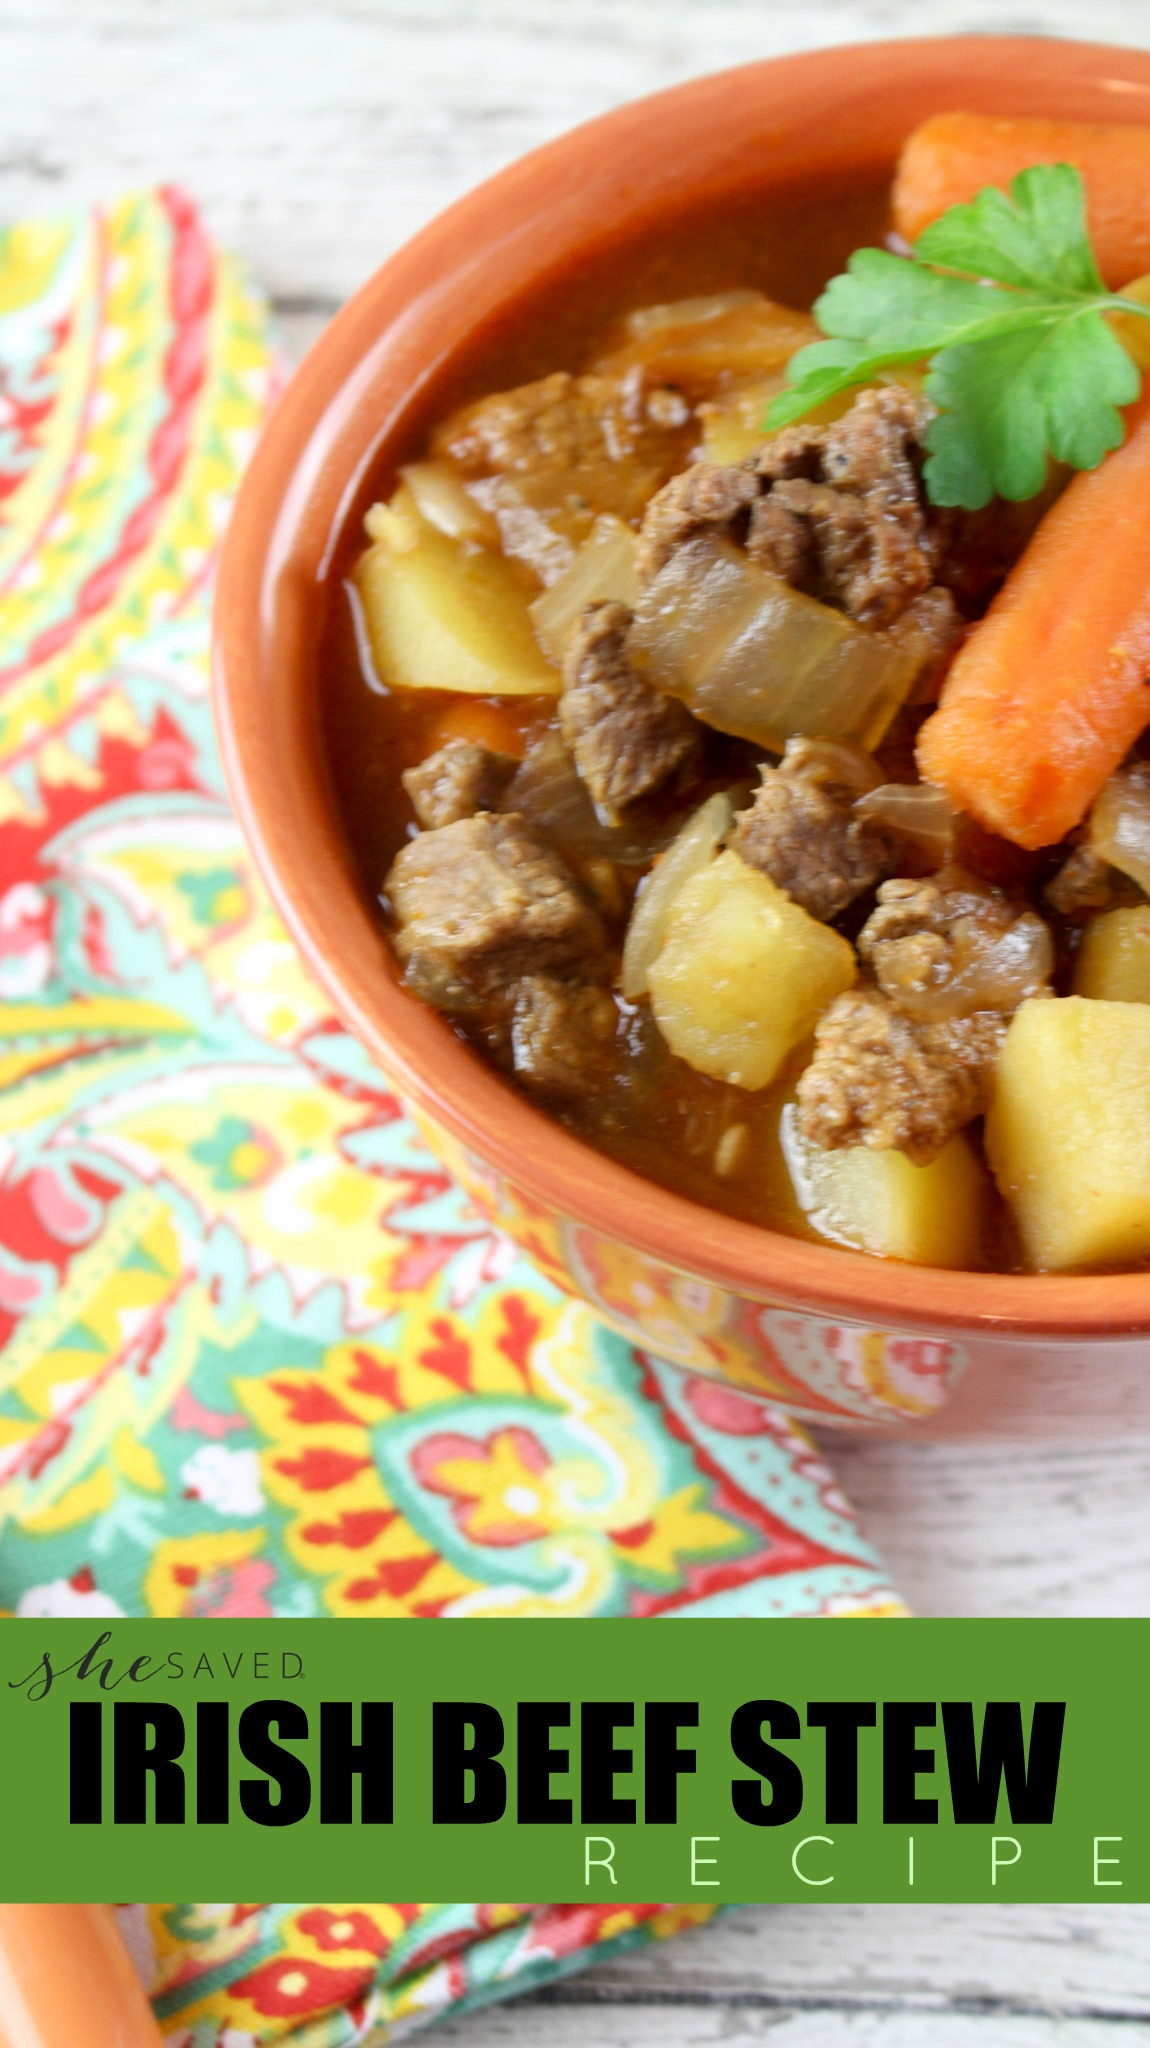 If you are looking for a delicious Irish themed meal, this Recipe for Irish Beef Stew will be a hit!